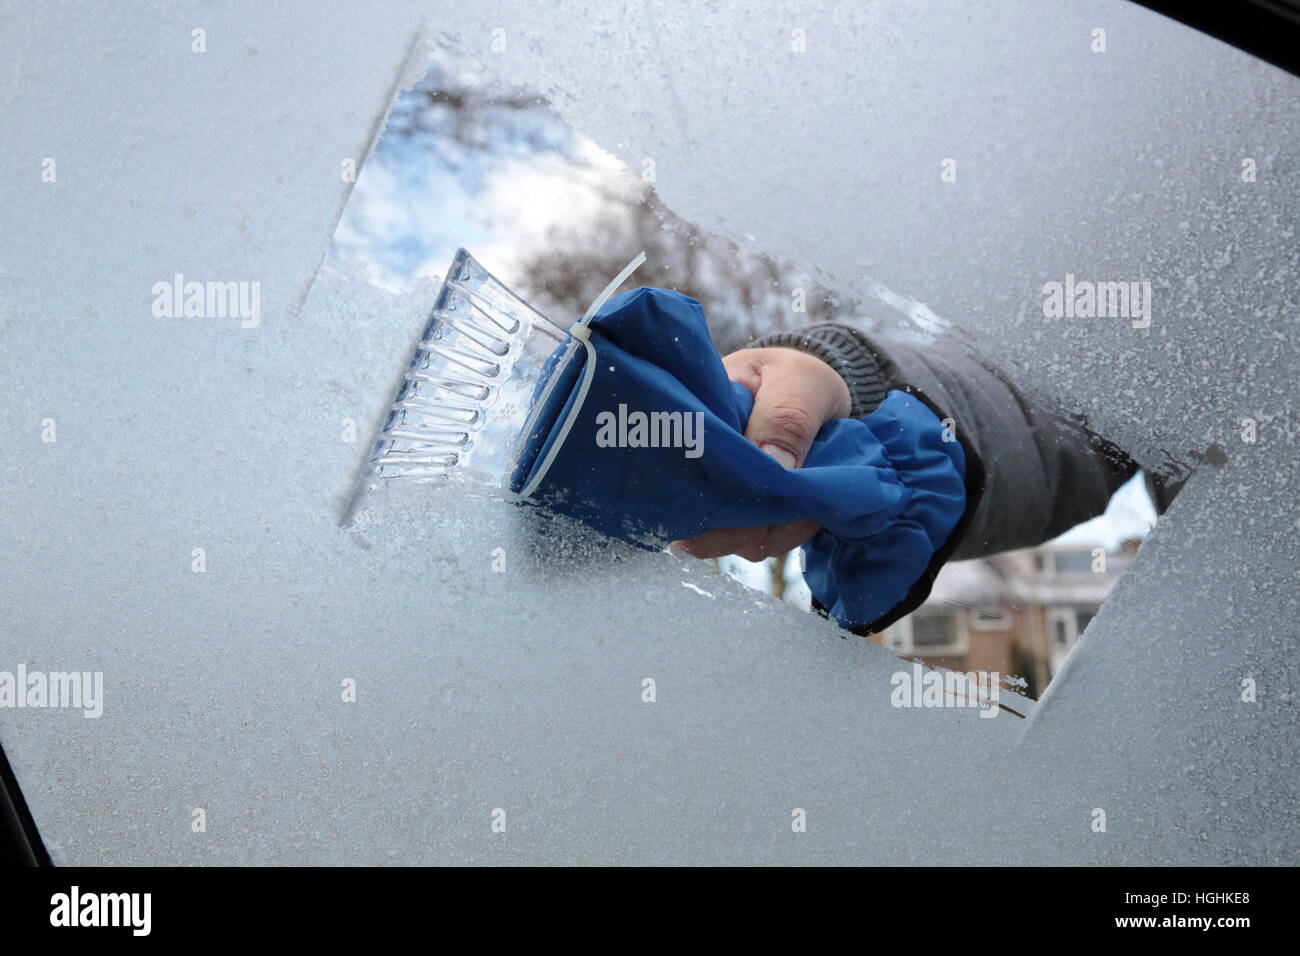 Man removing ice and snow from a car window with a ice scraper - Stock Image